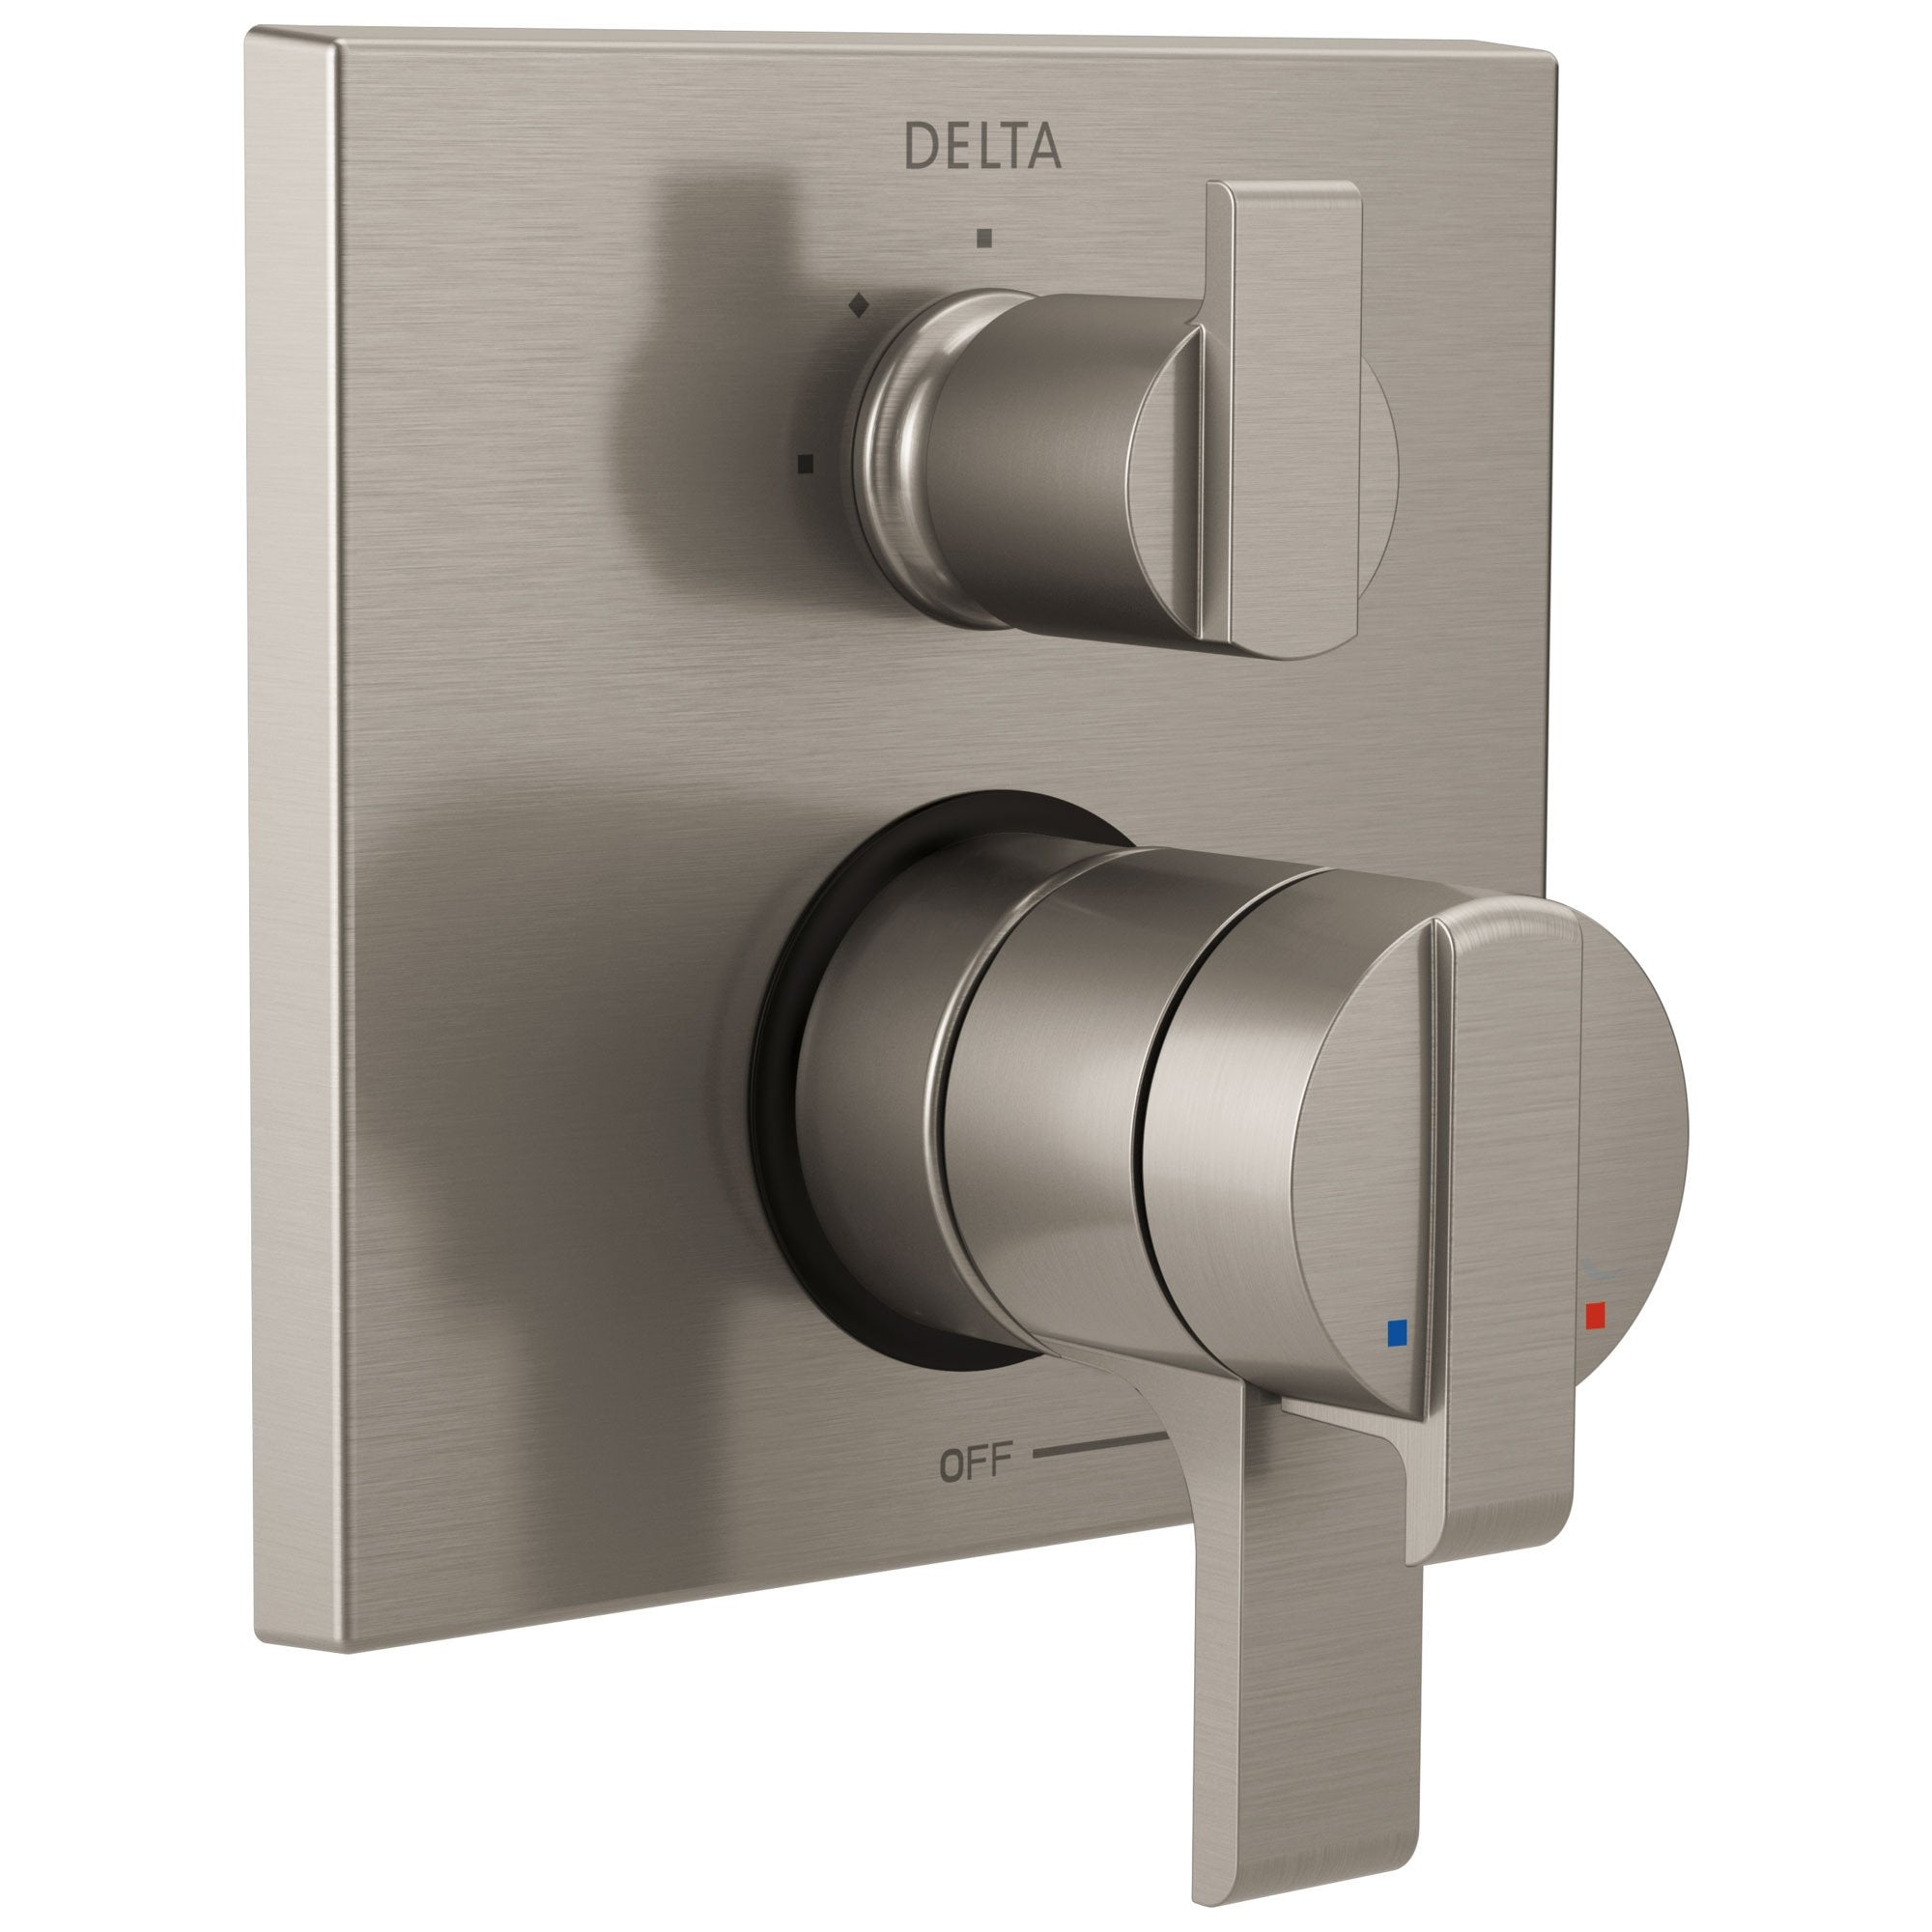 Delta Ara Collection Stainless Steel Finish Modern Shower Faucet Control Handle with 3-Setting Integrated Diverter Trim (Requires Valve) DT27867SS